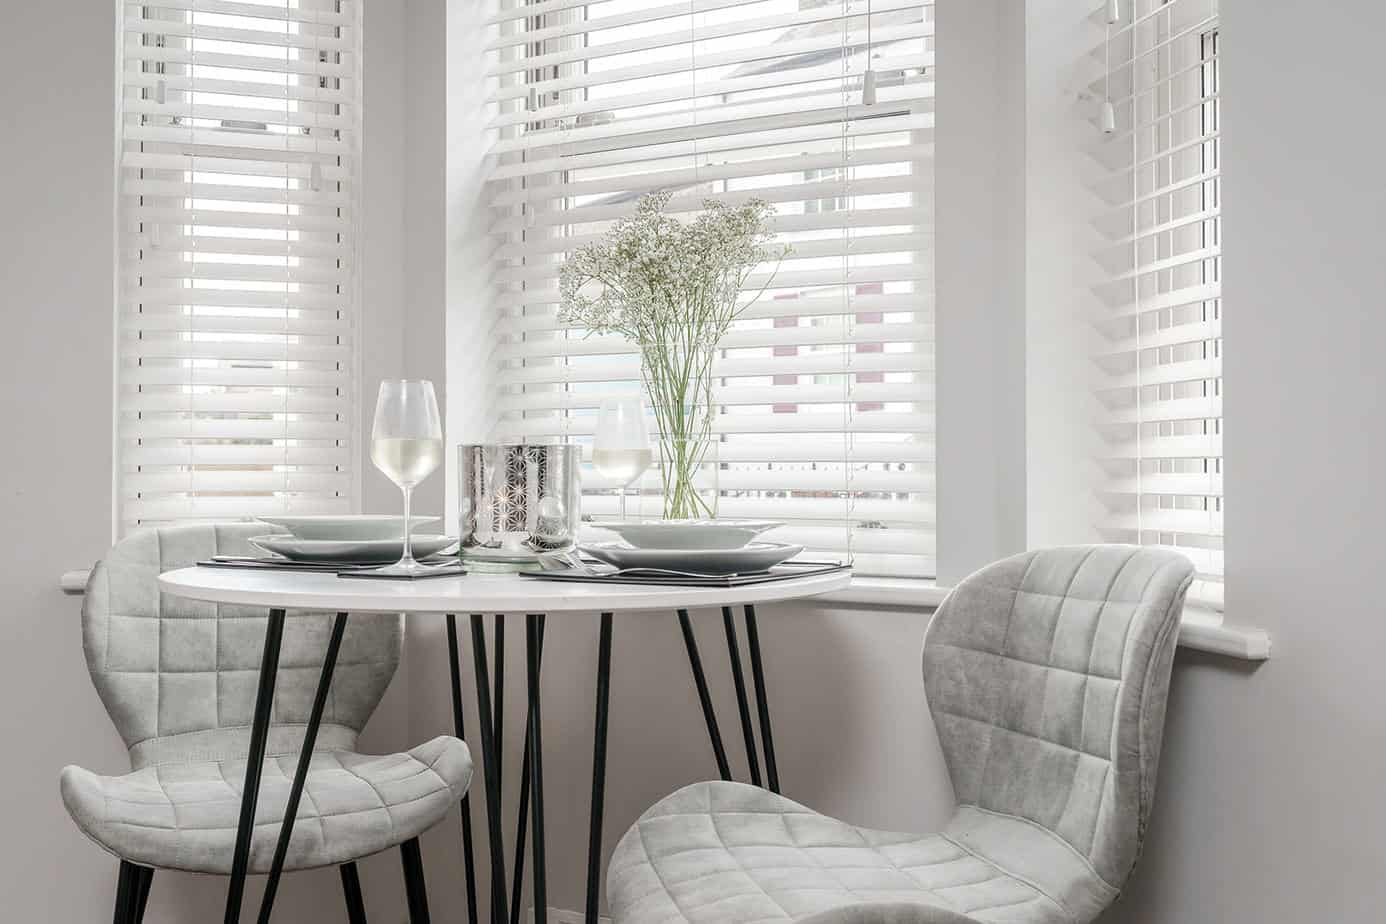 Tailored Stays Victoria Road Serviced Apartments Cambridge provide a home from home experience in the heart of the city.